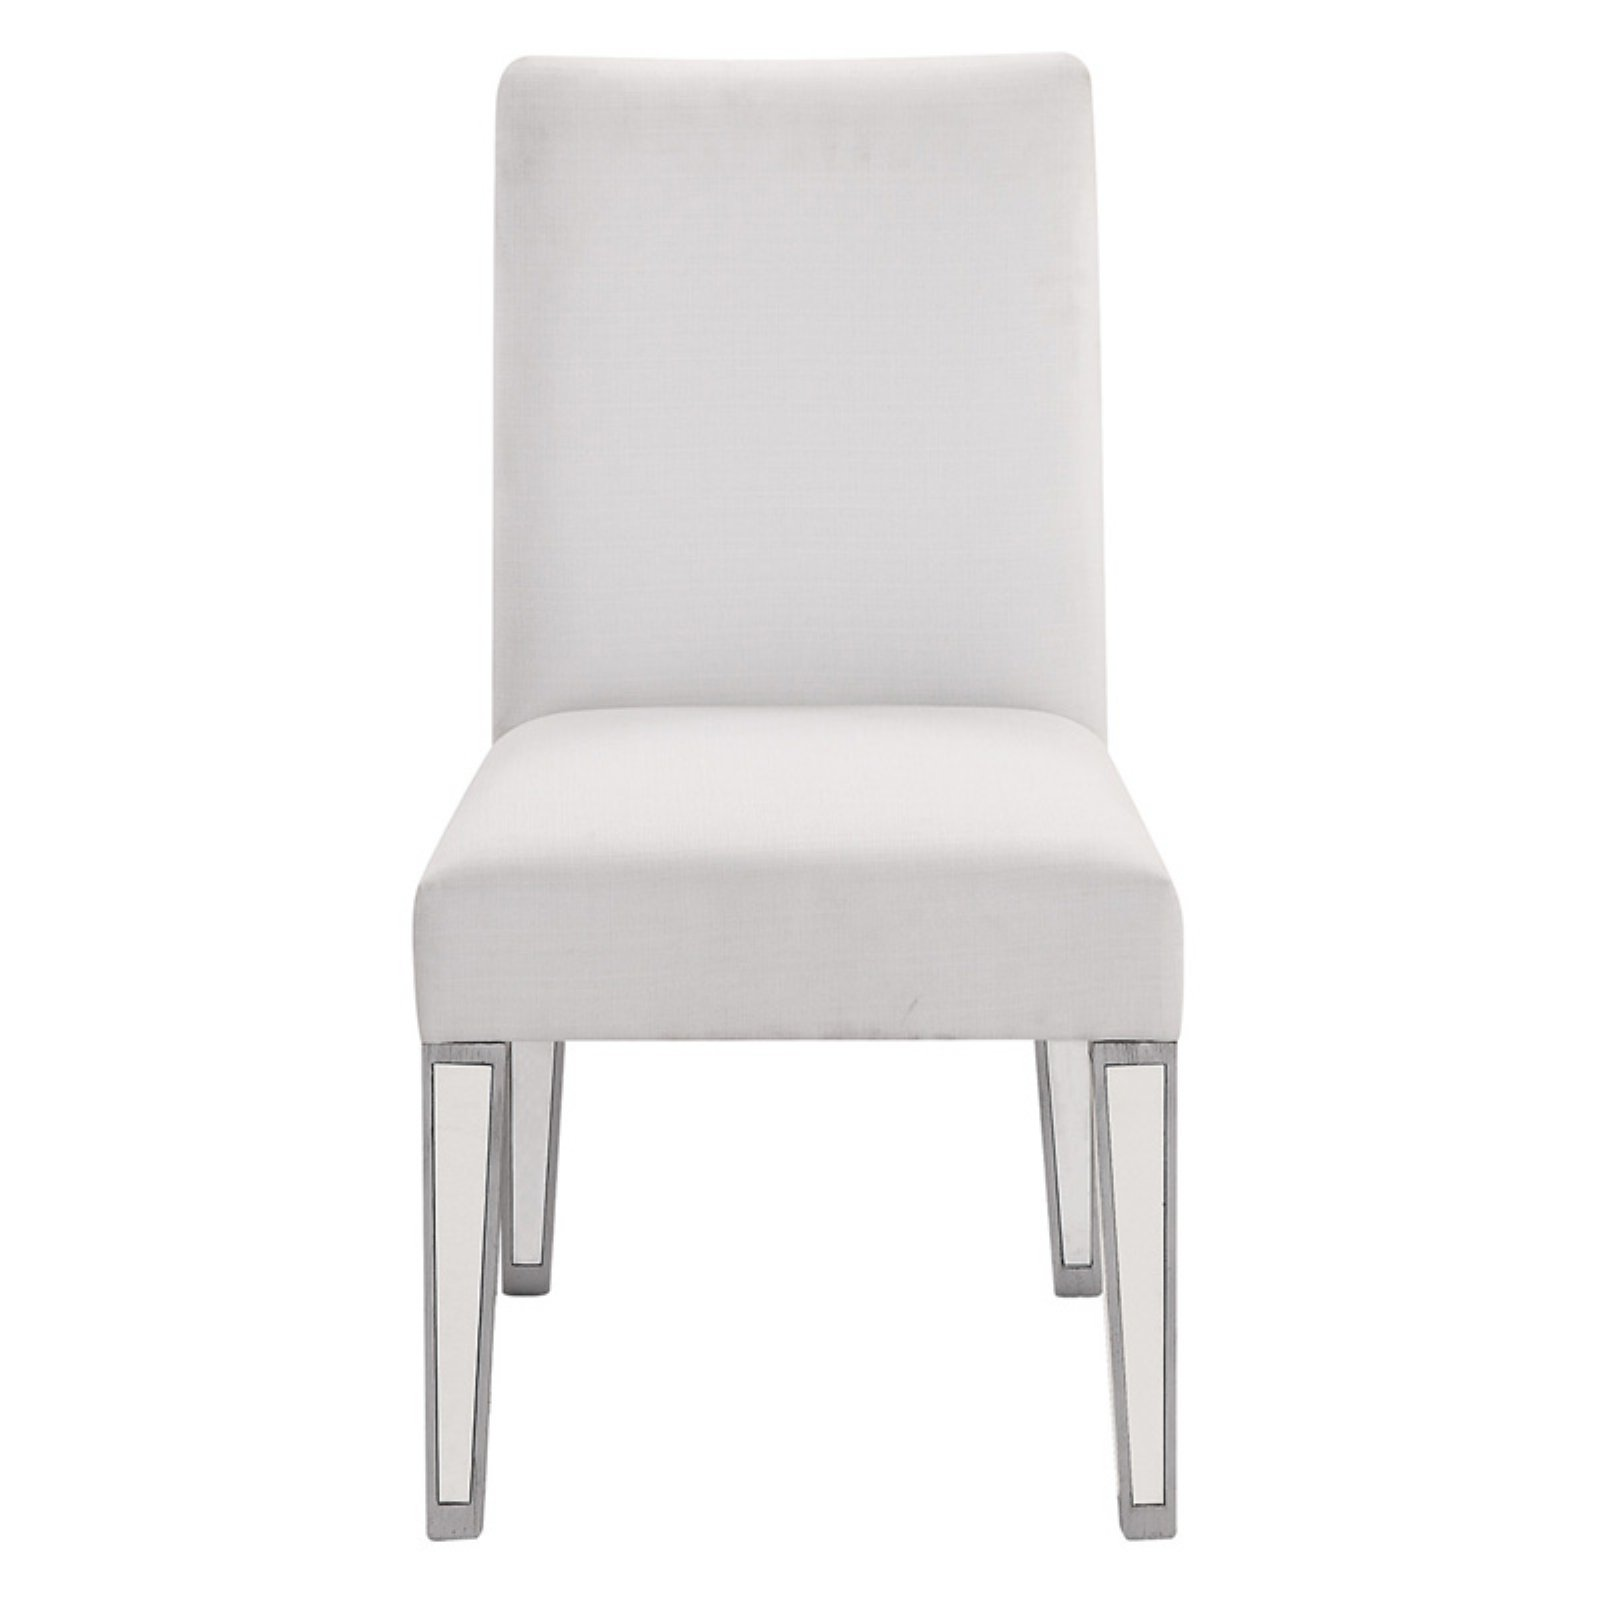 Elegant Lighting Mirrored Side Chair, Silver